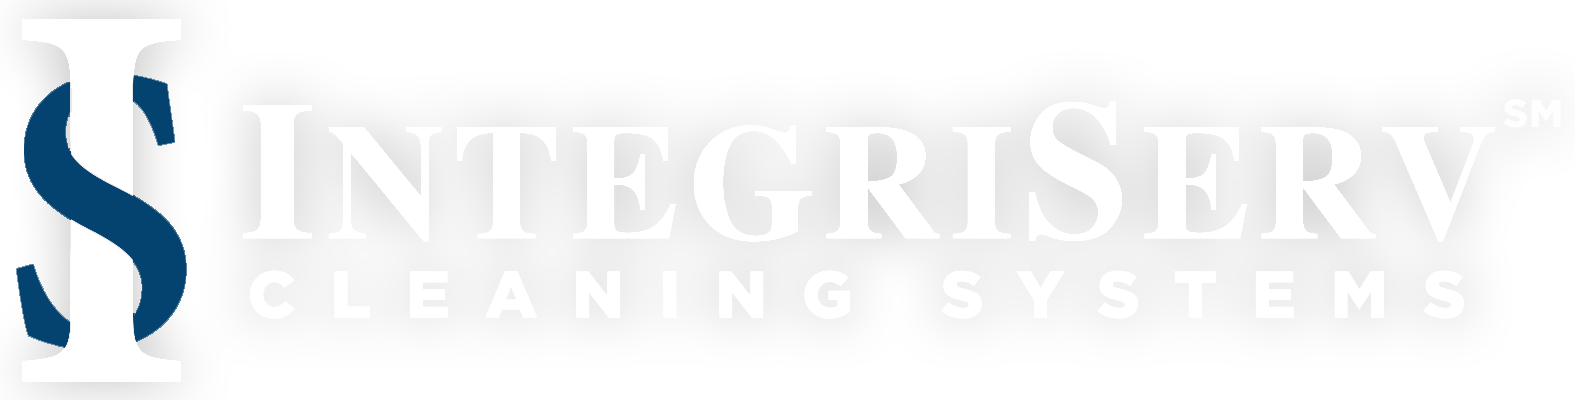 IntegriServ Cleaning Systems